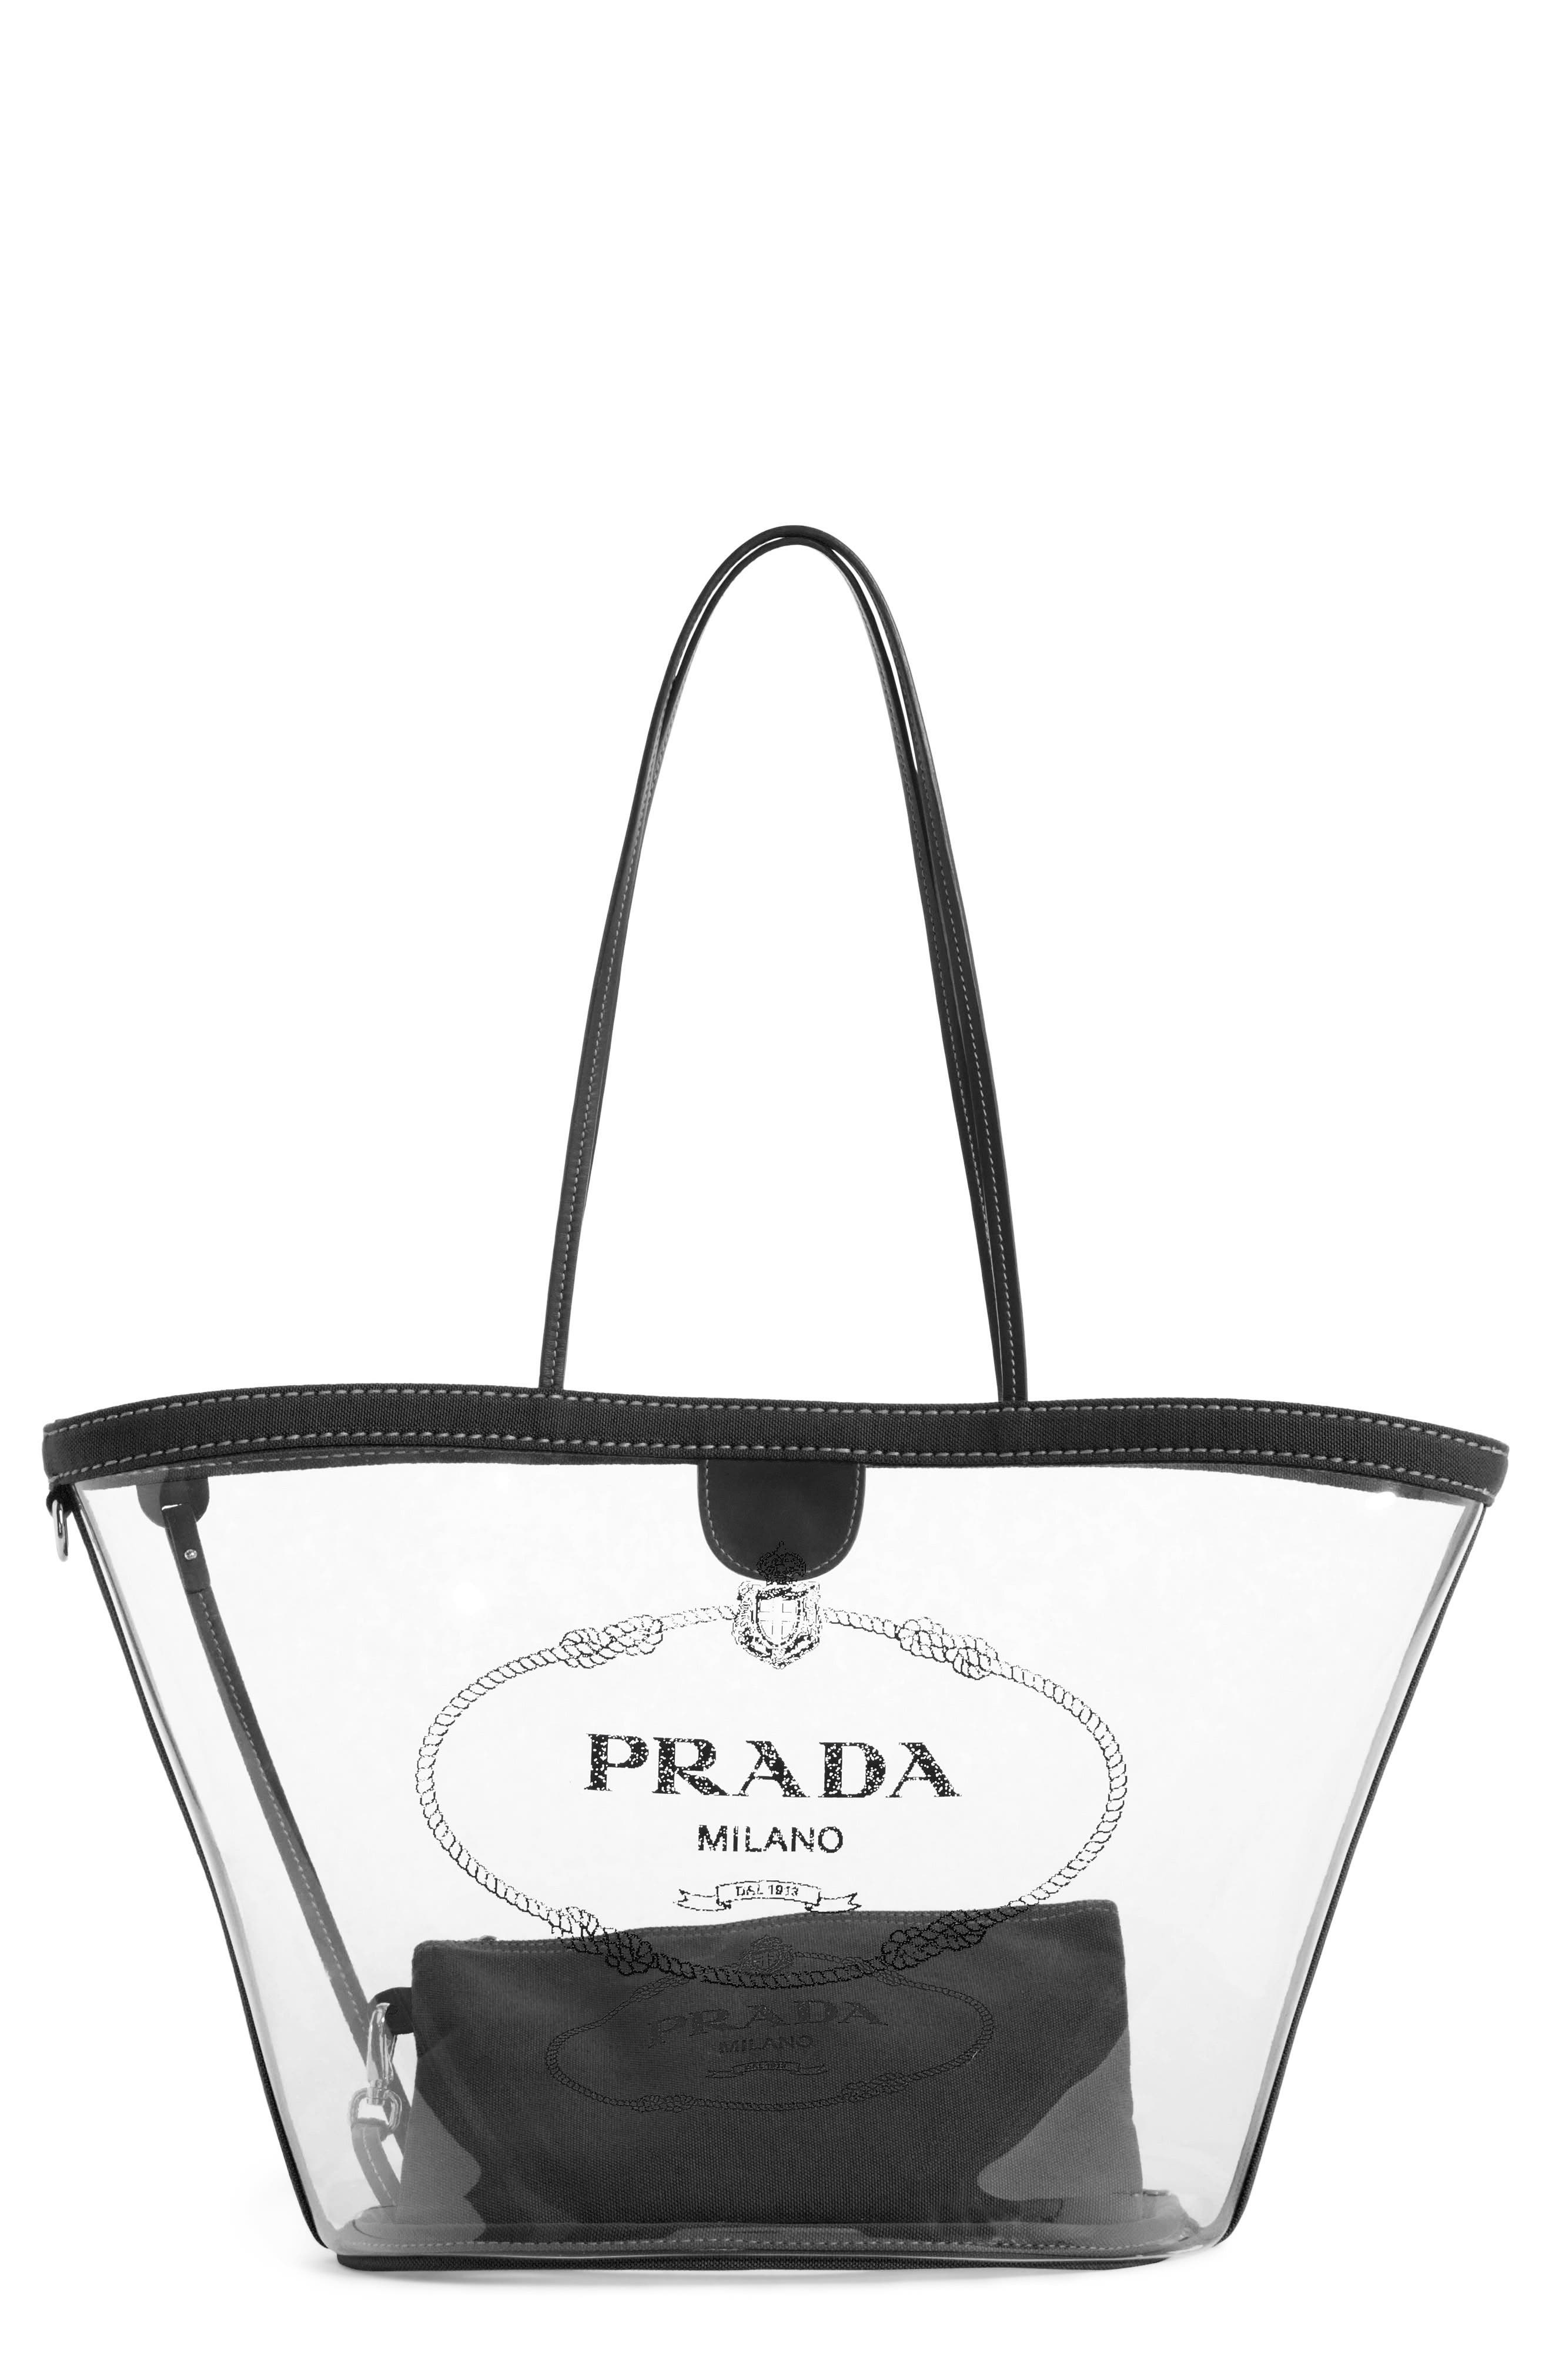 PRADA,                             Small Plex Shopper,                             Main thumbnail 1, color,                             001